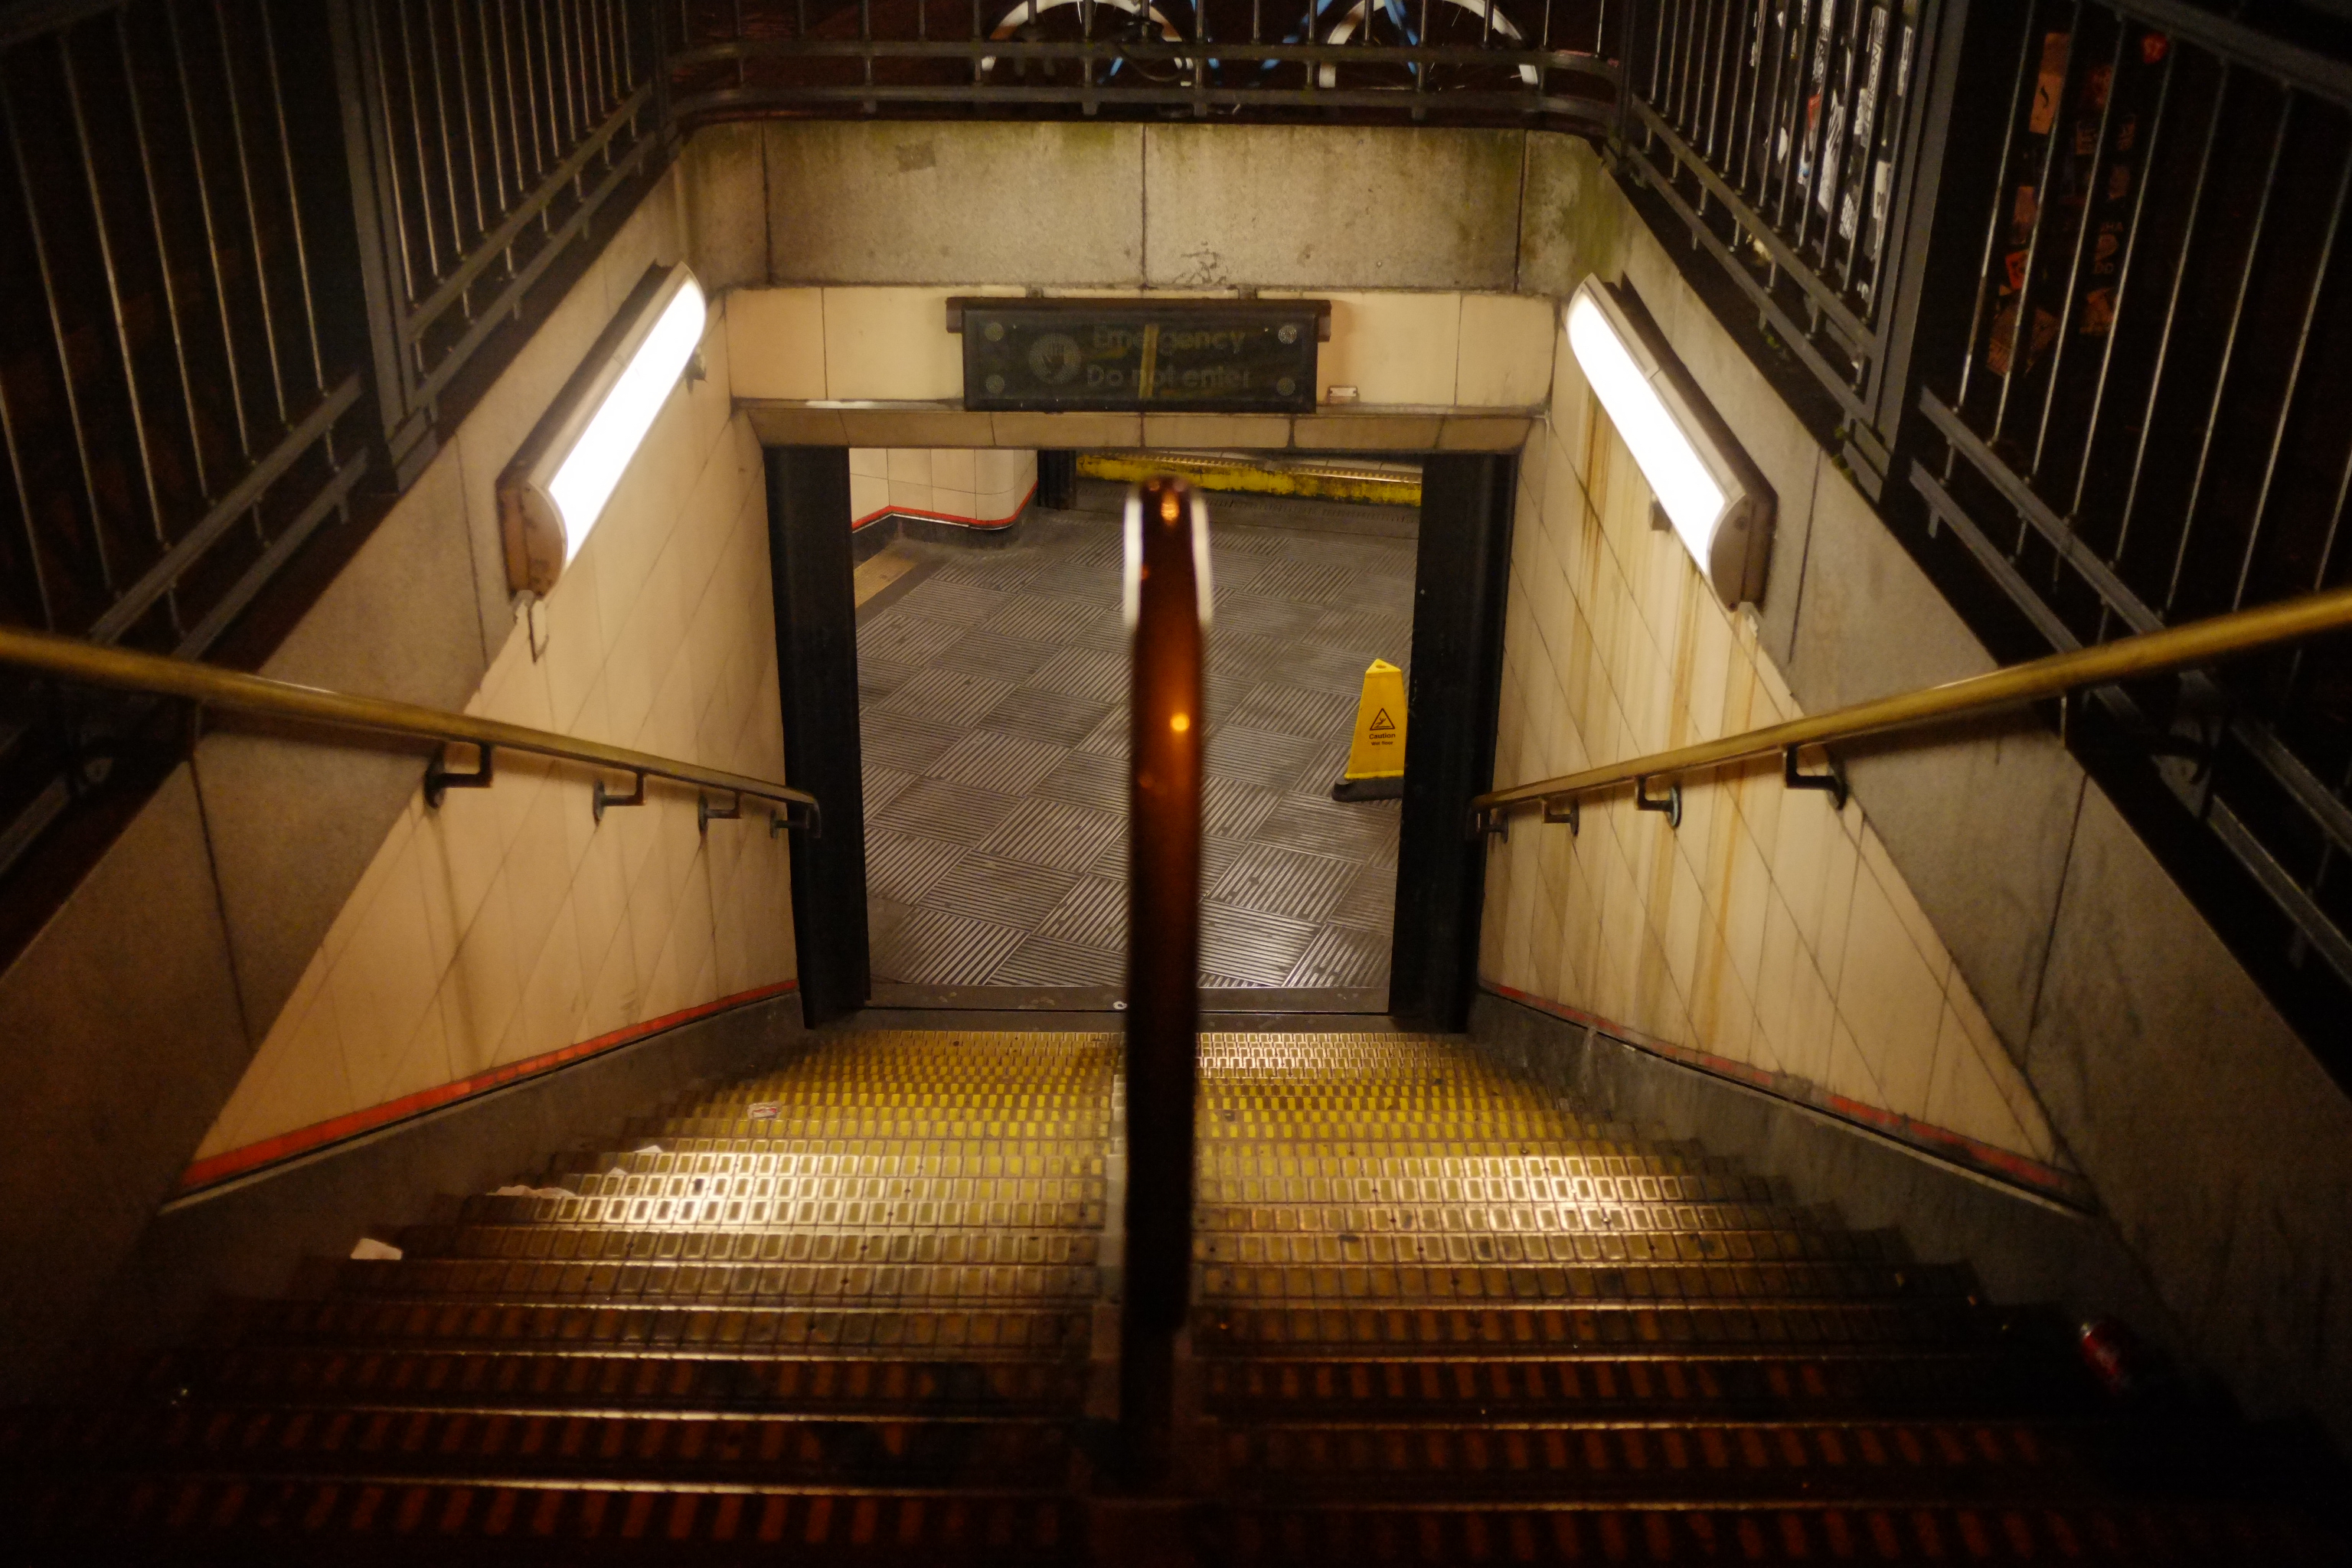 Amber-lit-stairs-of-Bethnal-Green-London-Tube-Station